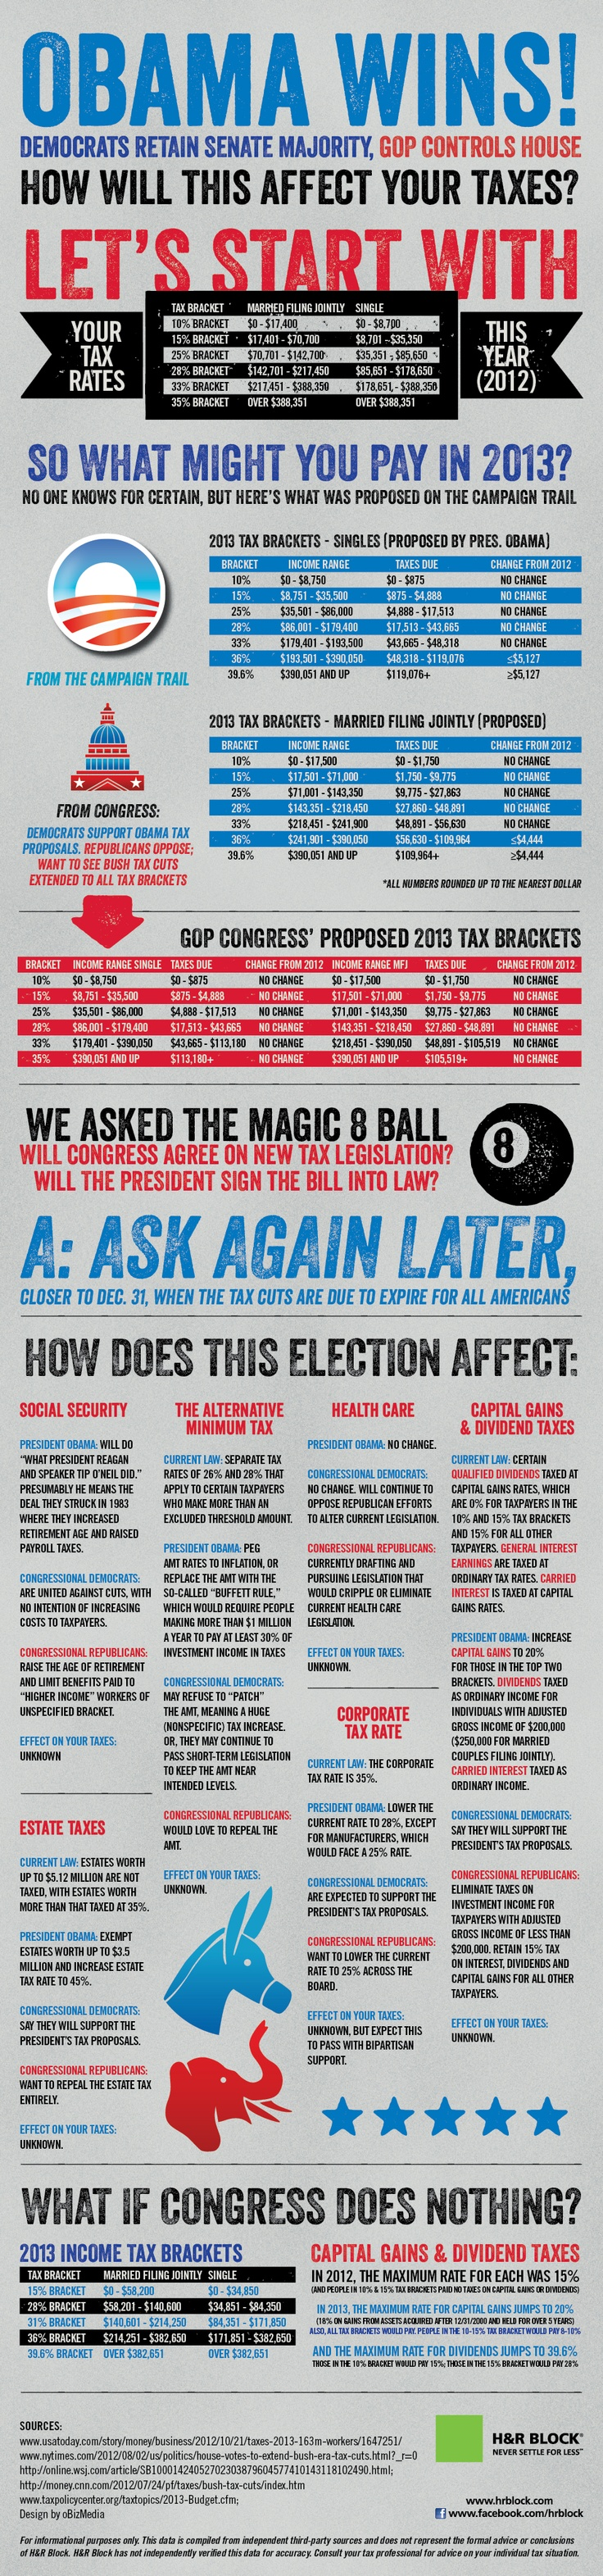 What Your Taxes Will Look Like In Obama's Second Term